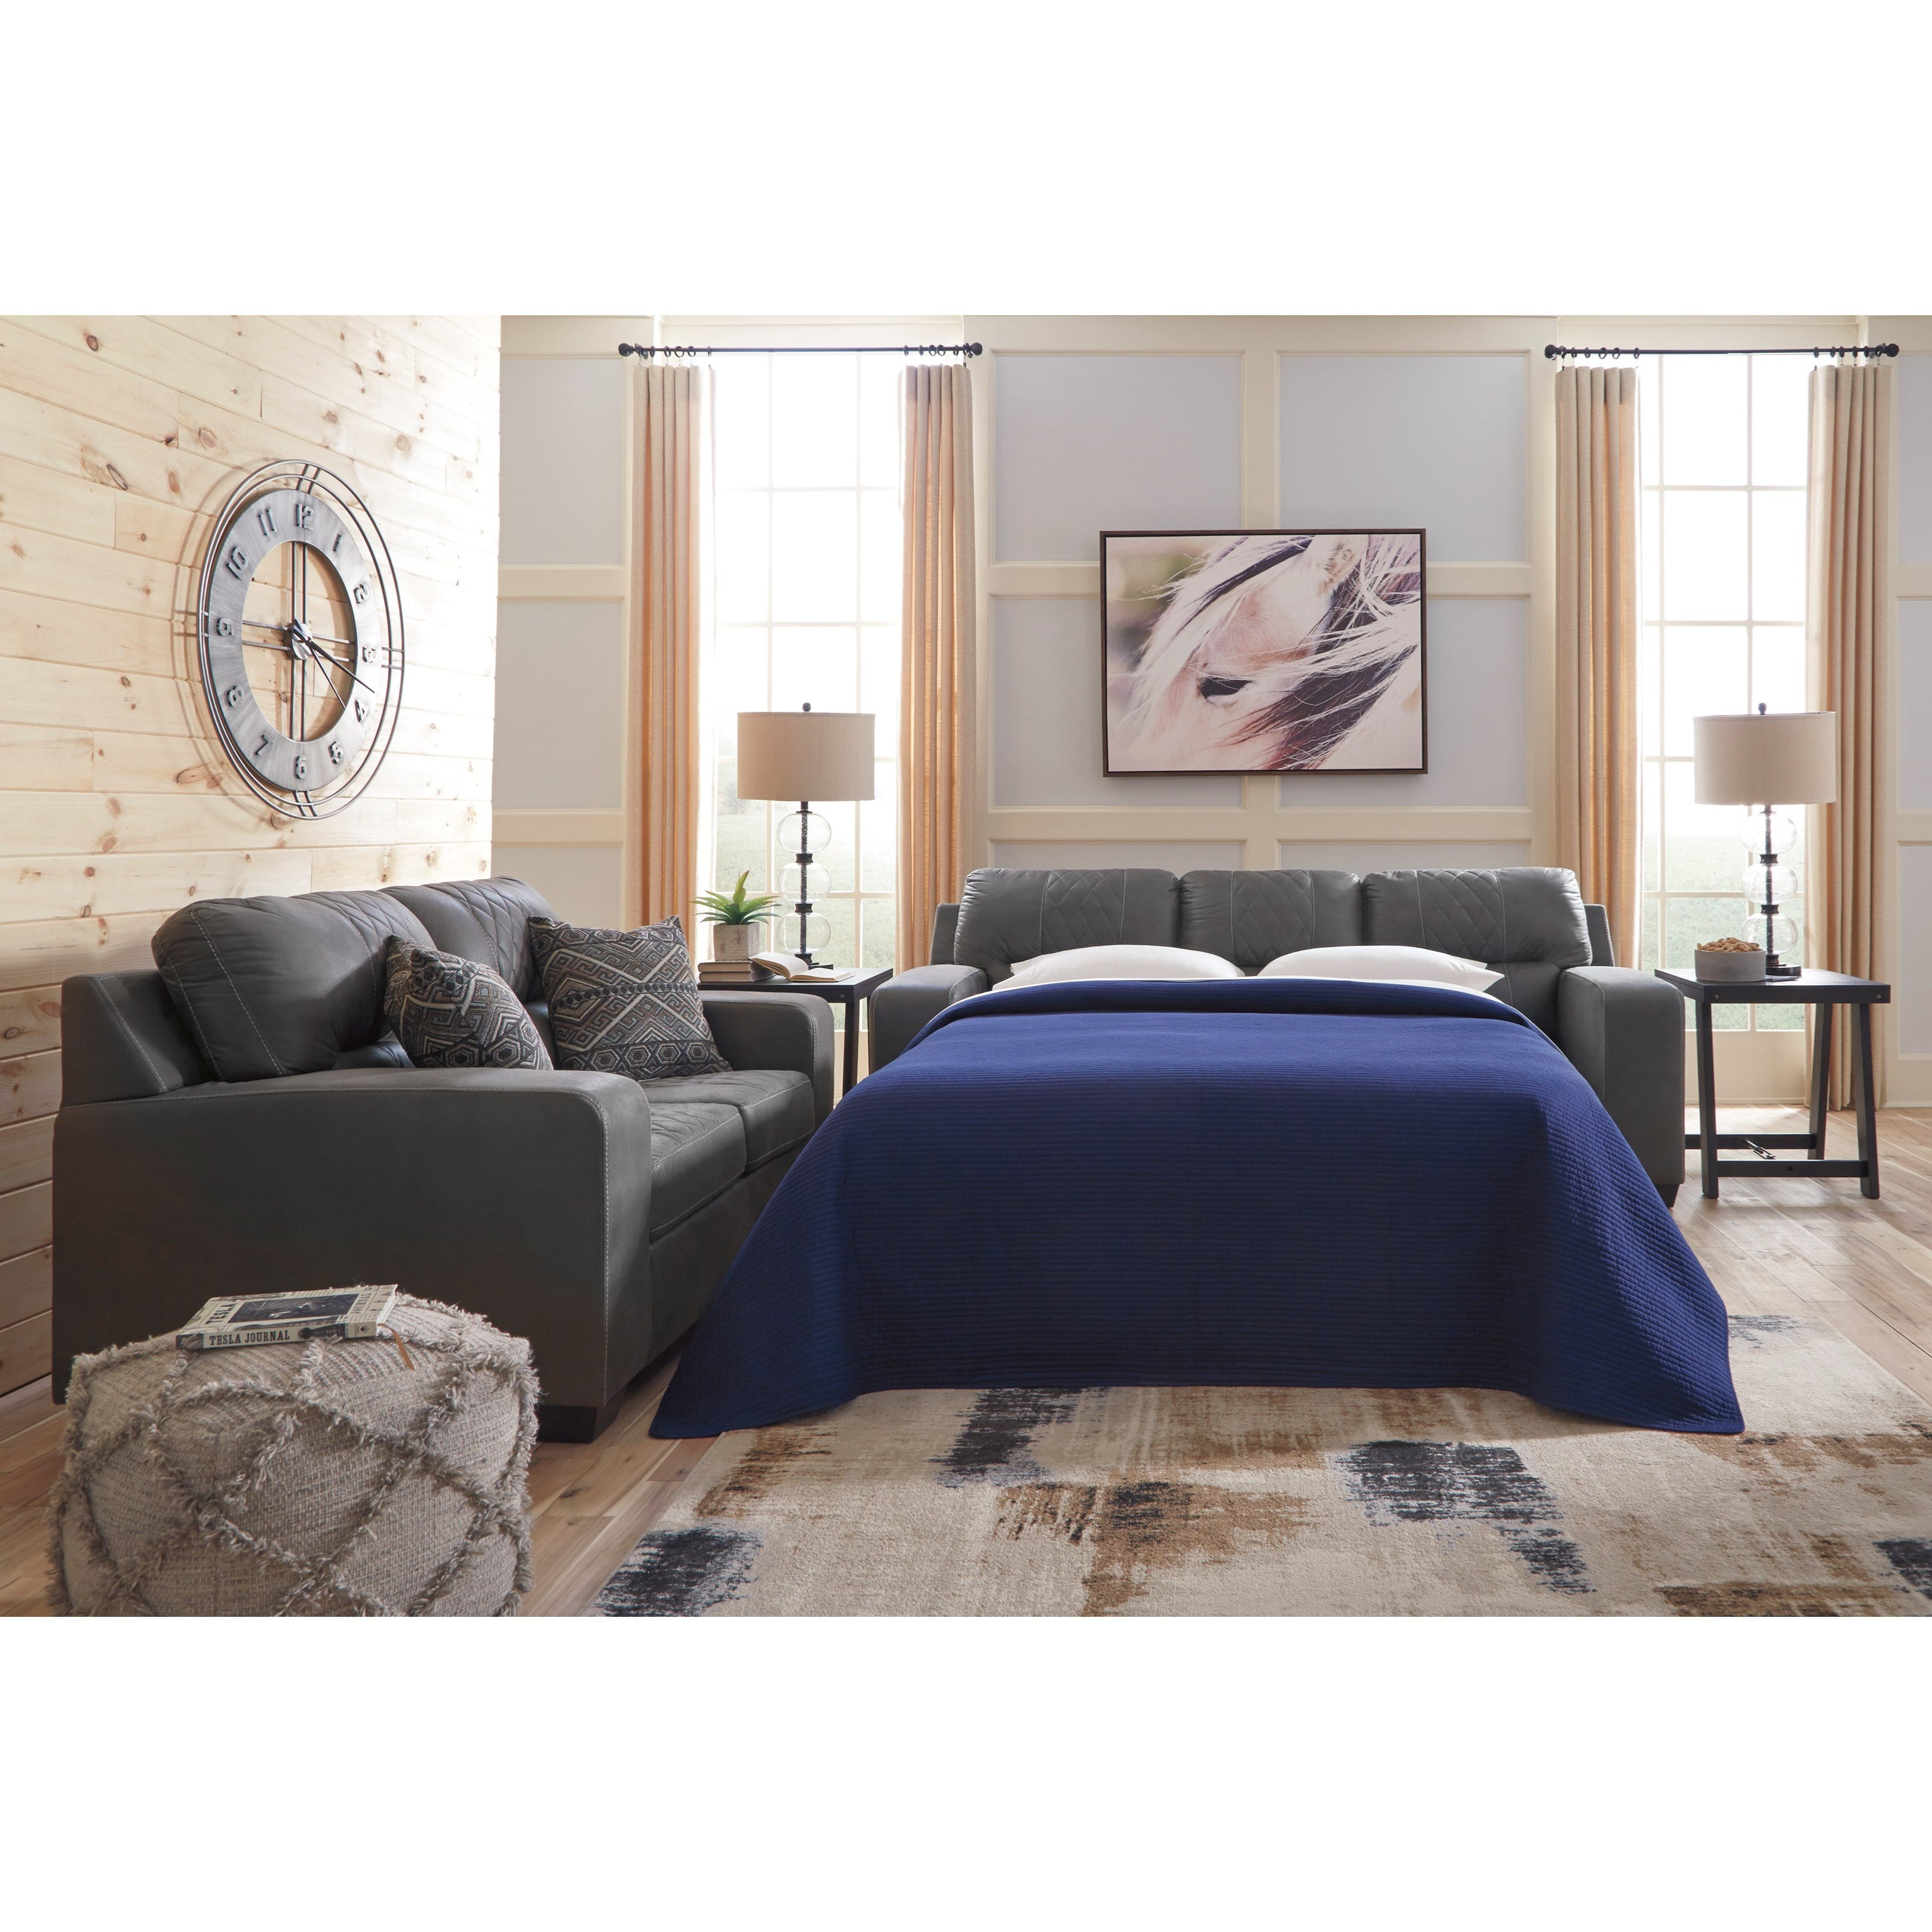 Living Room Furniture Nj: Benchcraft Narzole Living Room Group